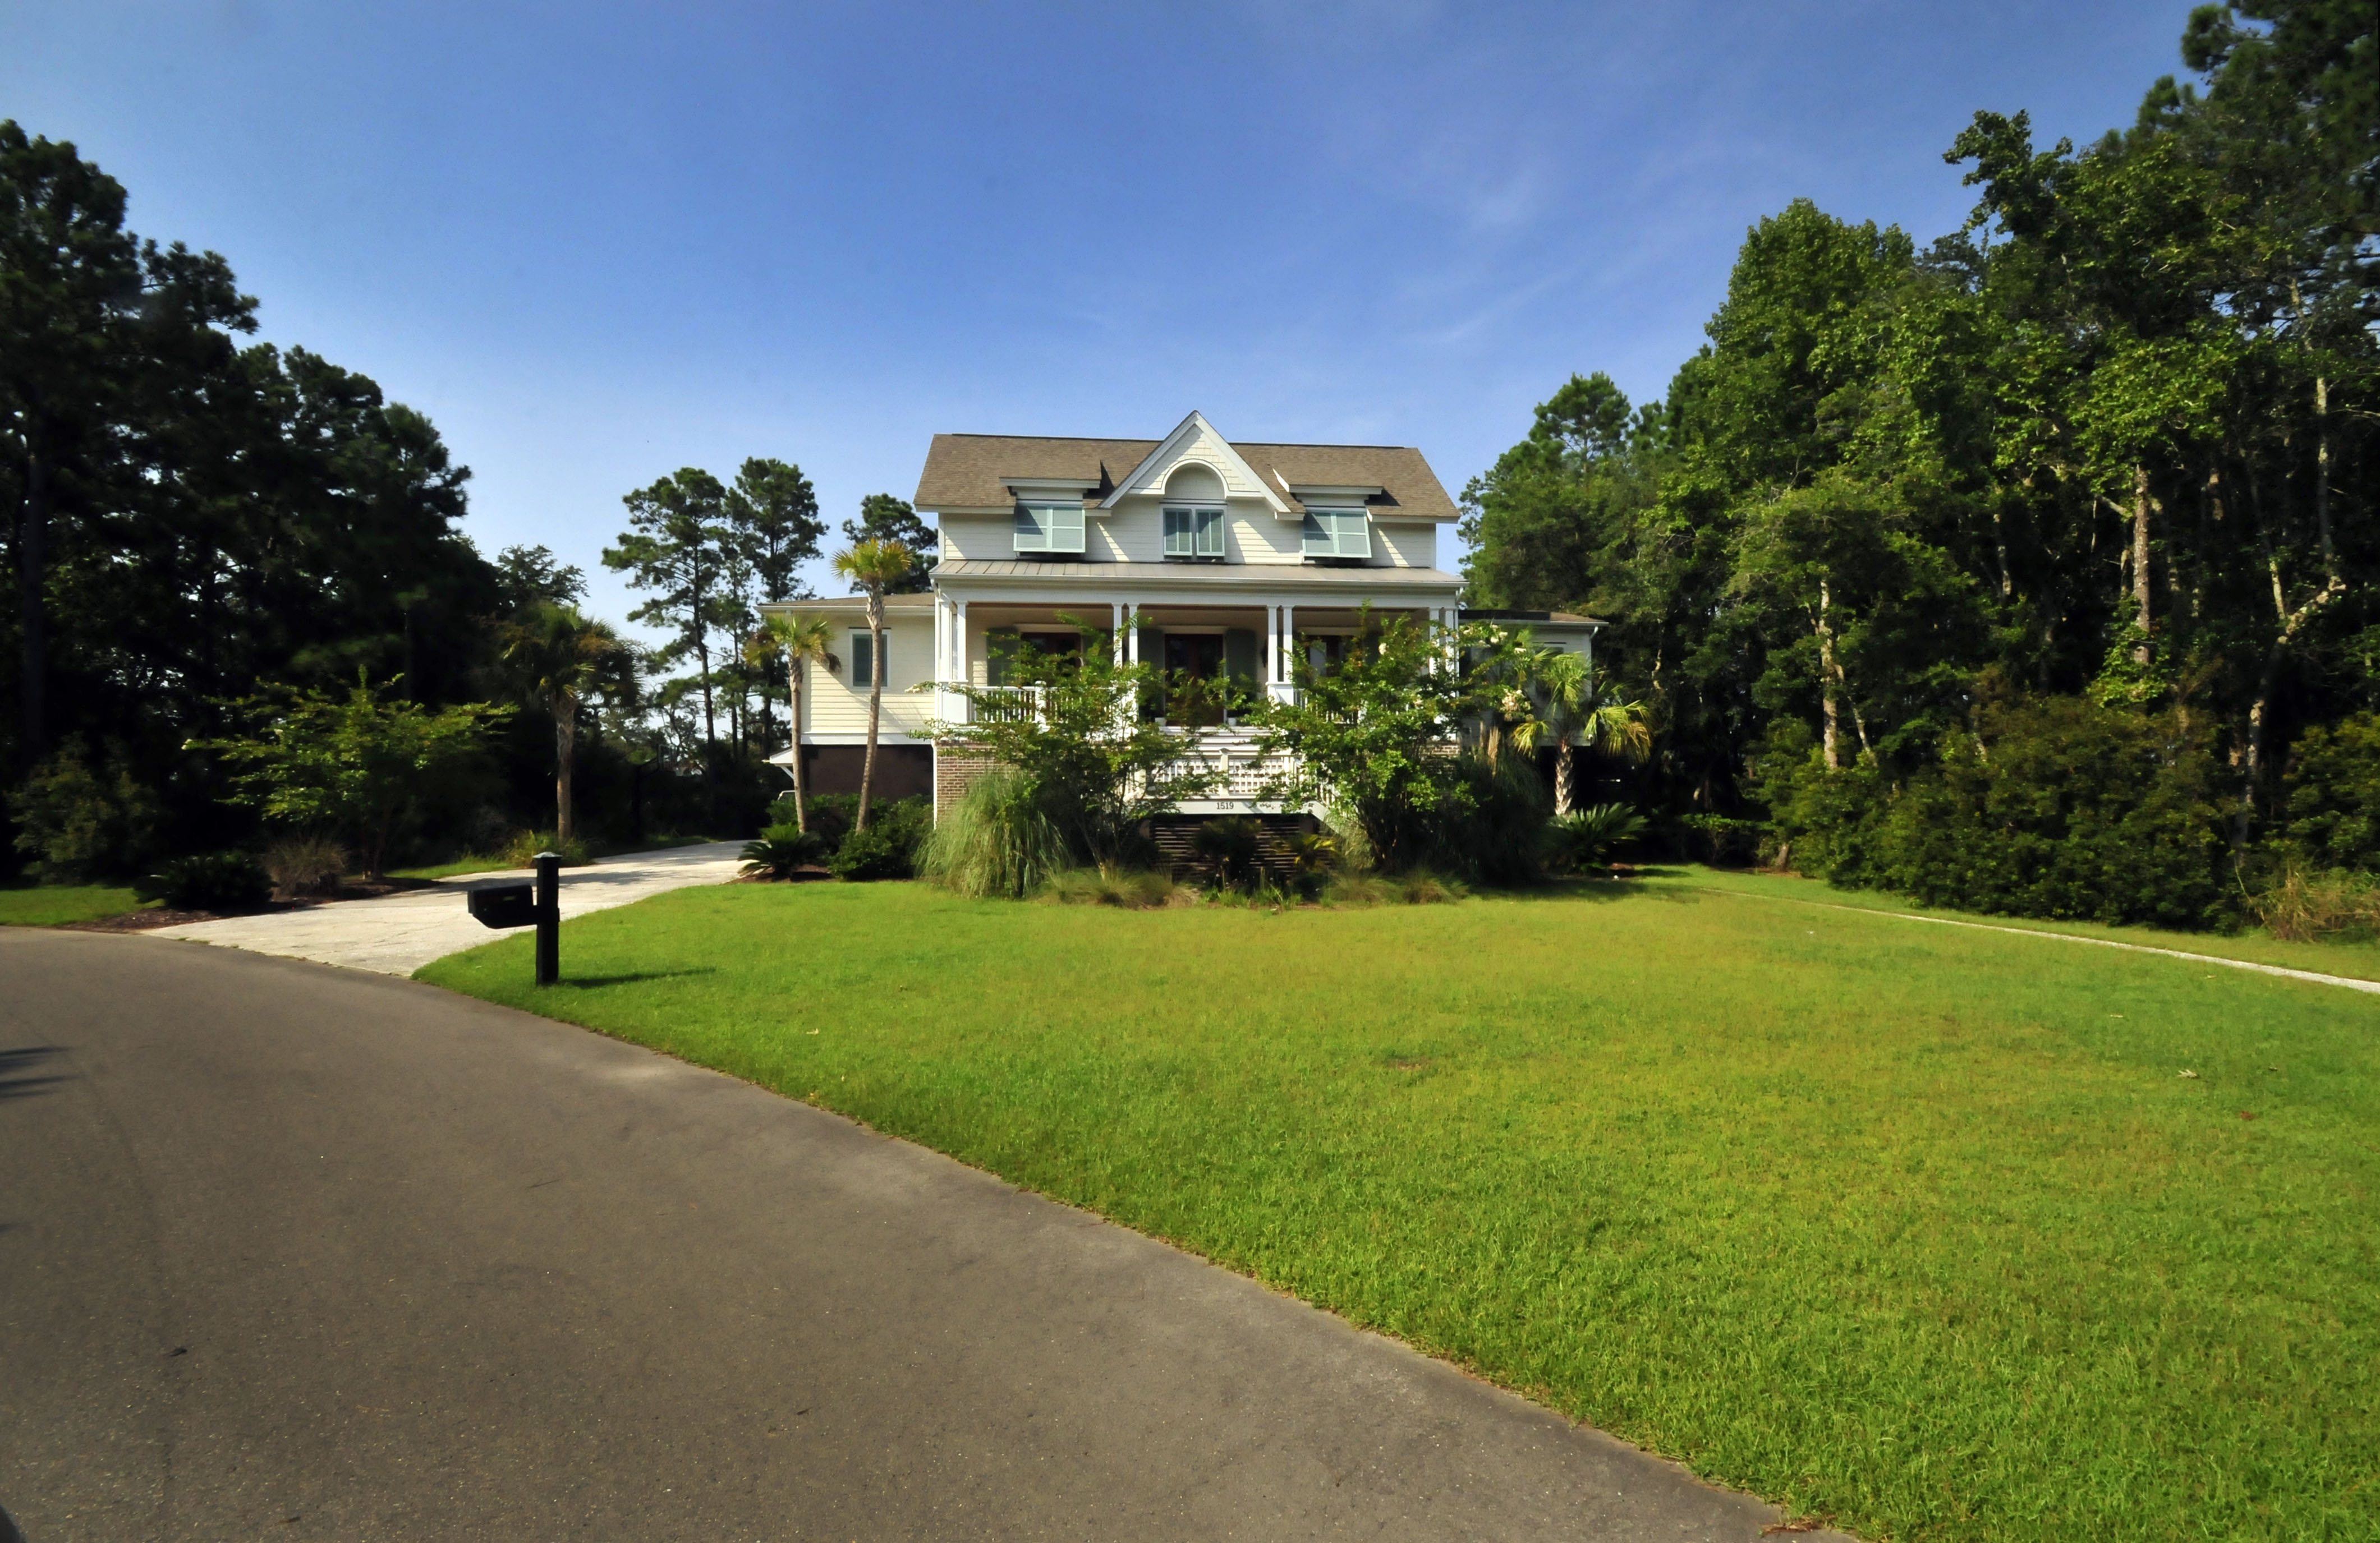 Existing Home on Paradise Island, Awendaw, SC